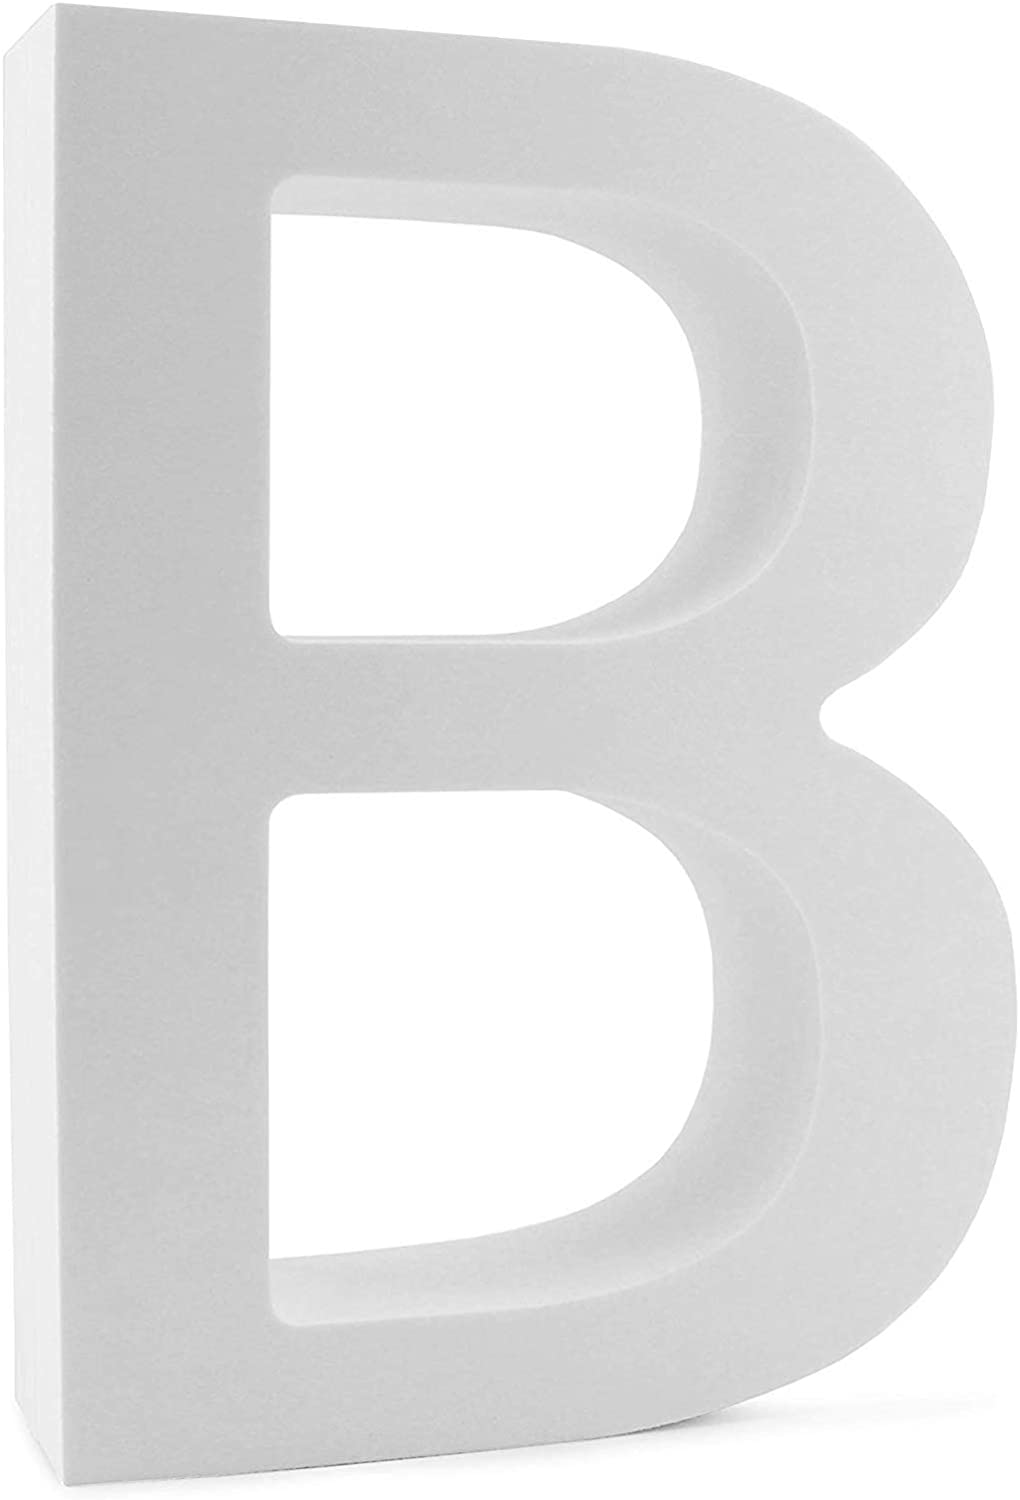 Cornucopia 12-Inch EVA Foam Letter B for Events, Parties, Weddings and Businesses